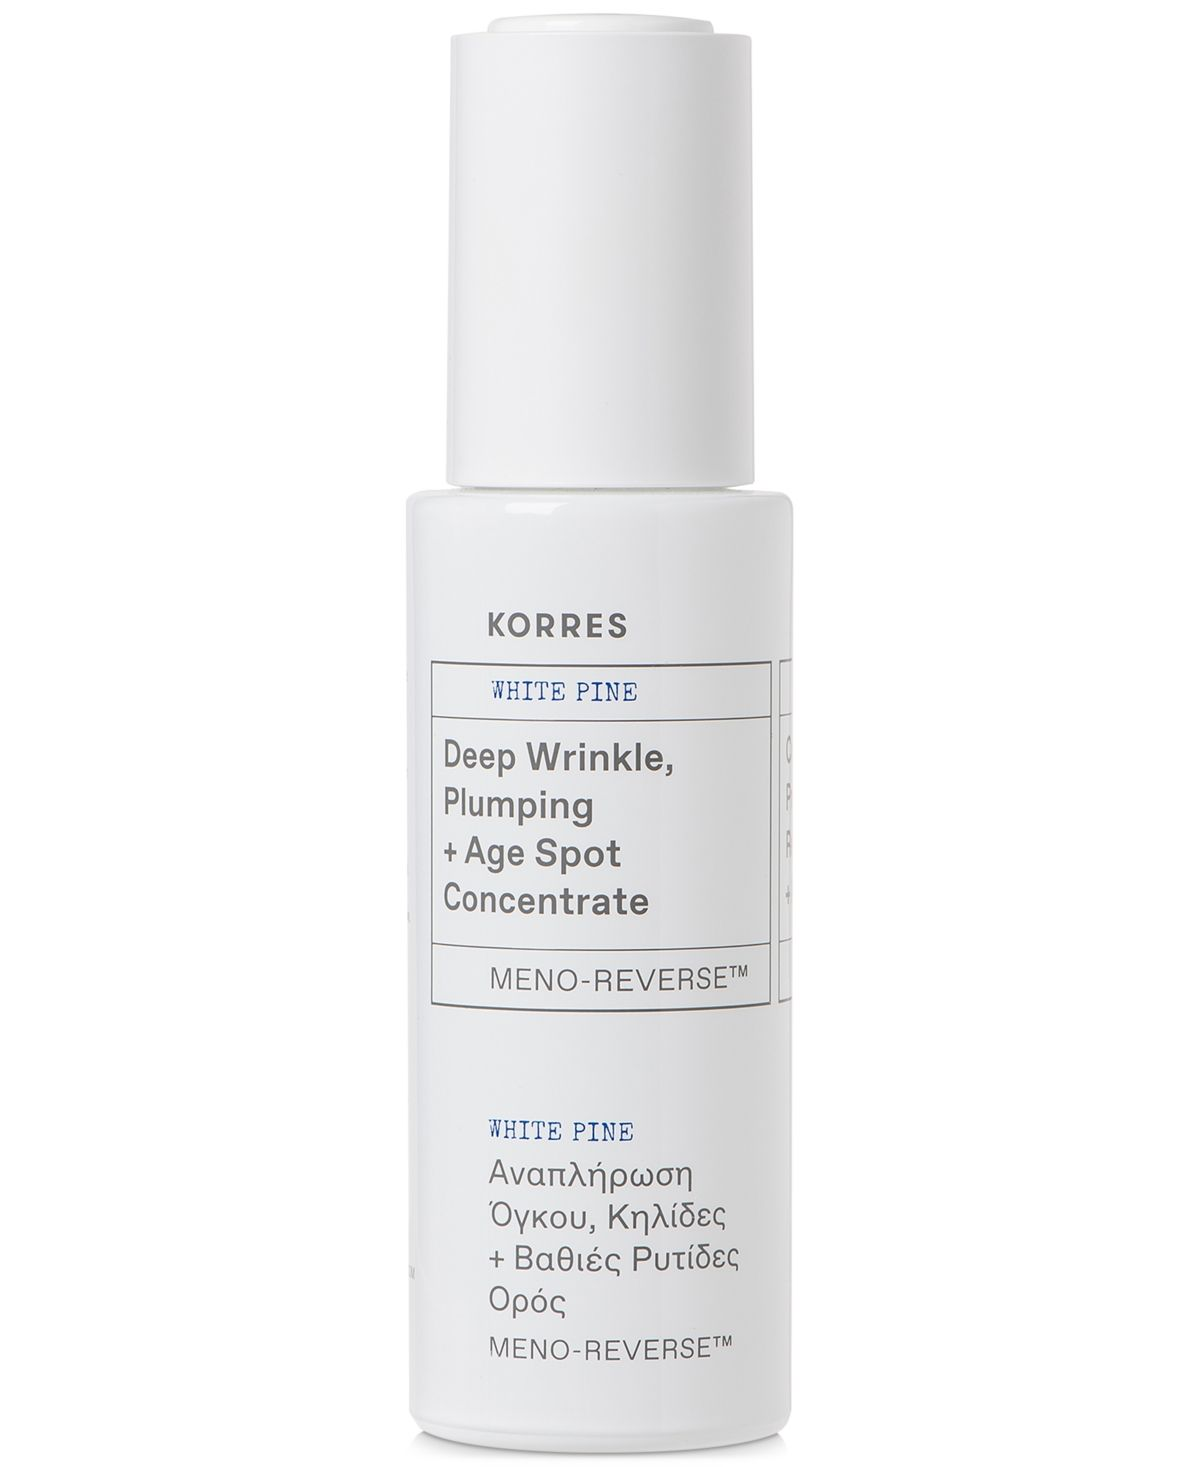 Korres White Pine Meno Reverse Deep Wrinkle Plumping Age Spot Concentrate Reviews Skin Care Beauty Macy S In 2020 Deep Wrinkles Korres Plumping